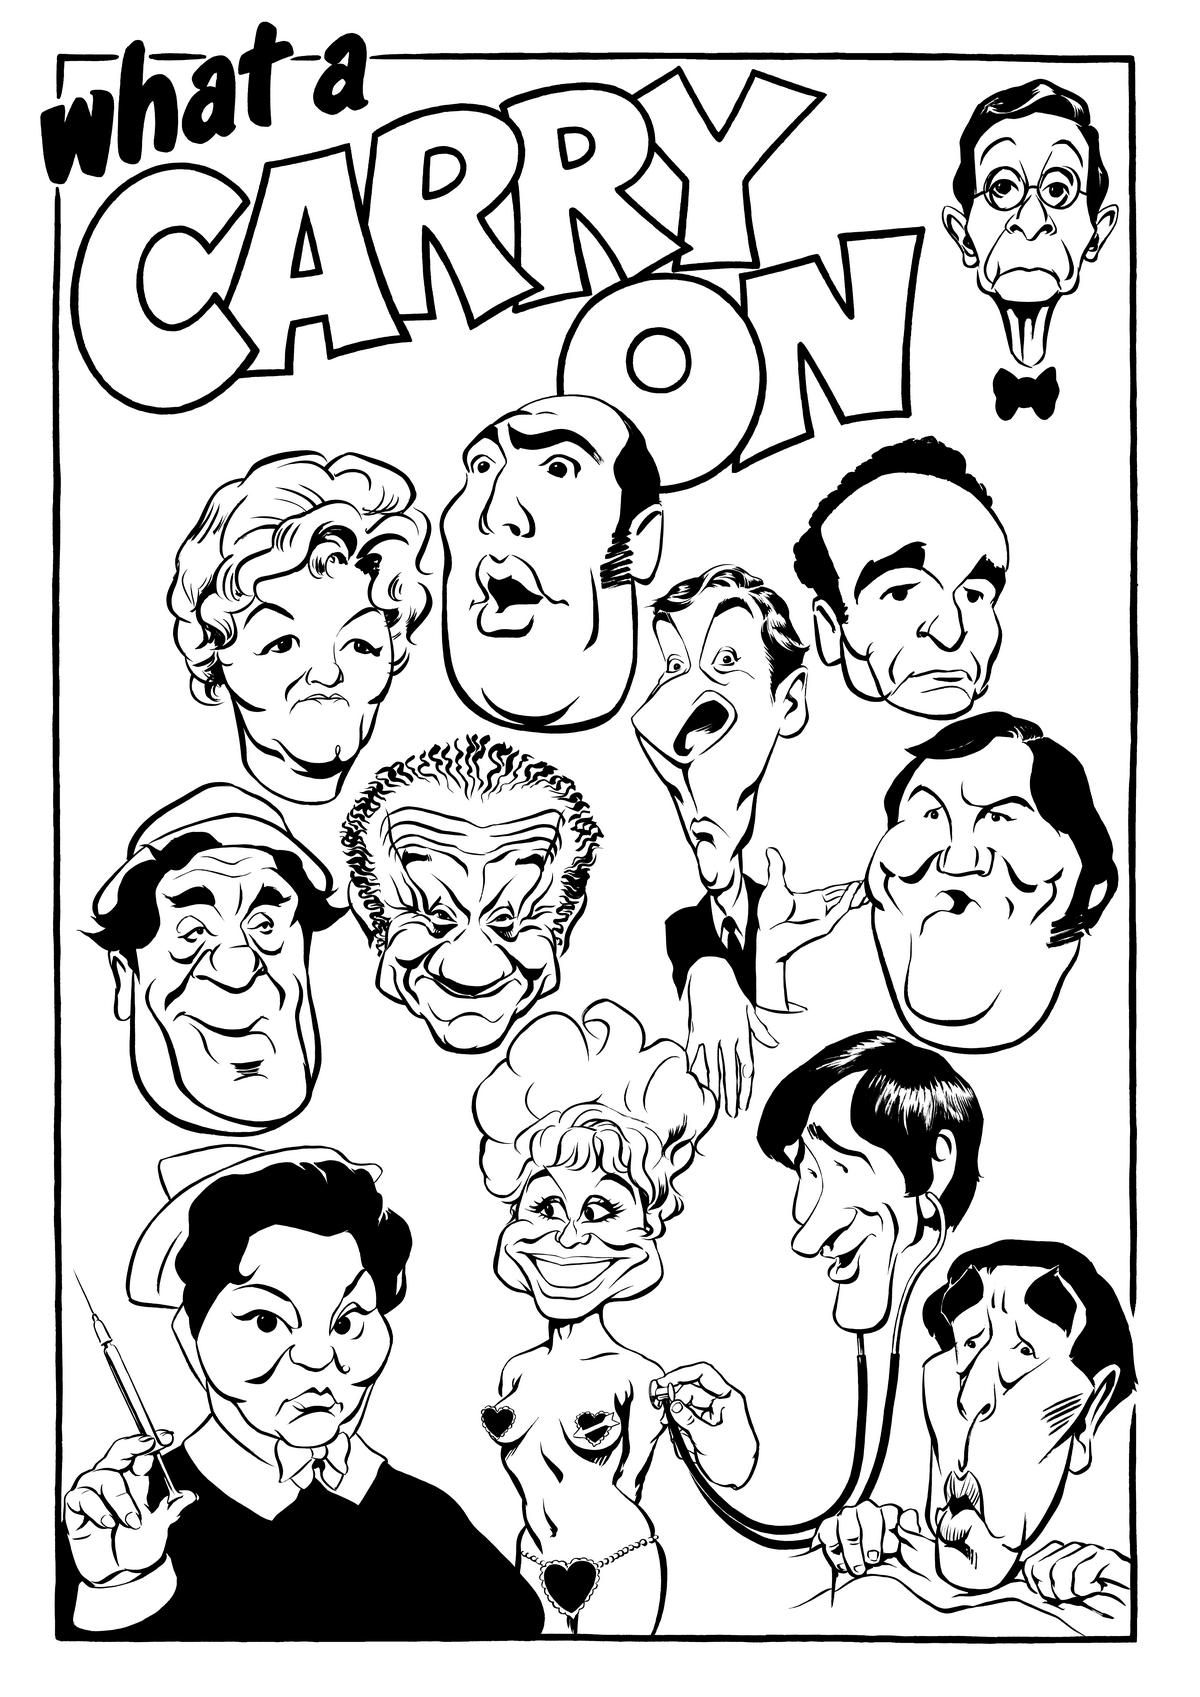 Carry On caricature